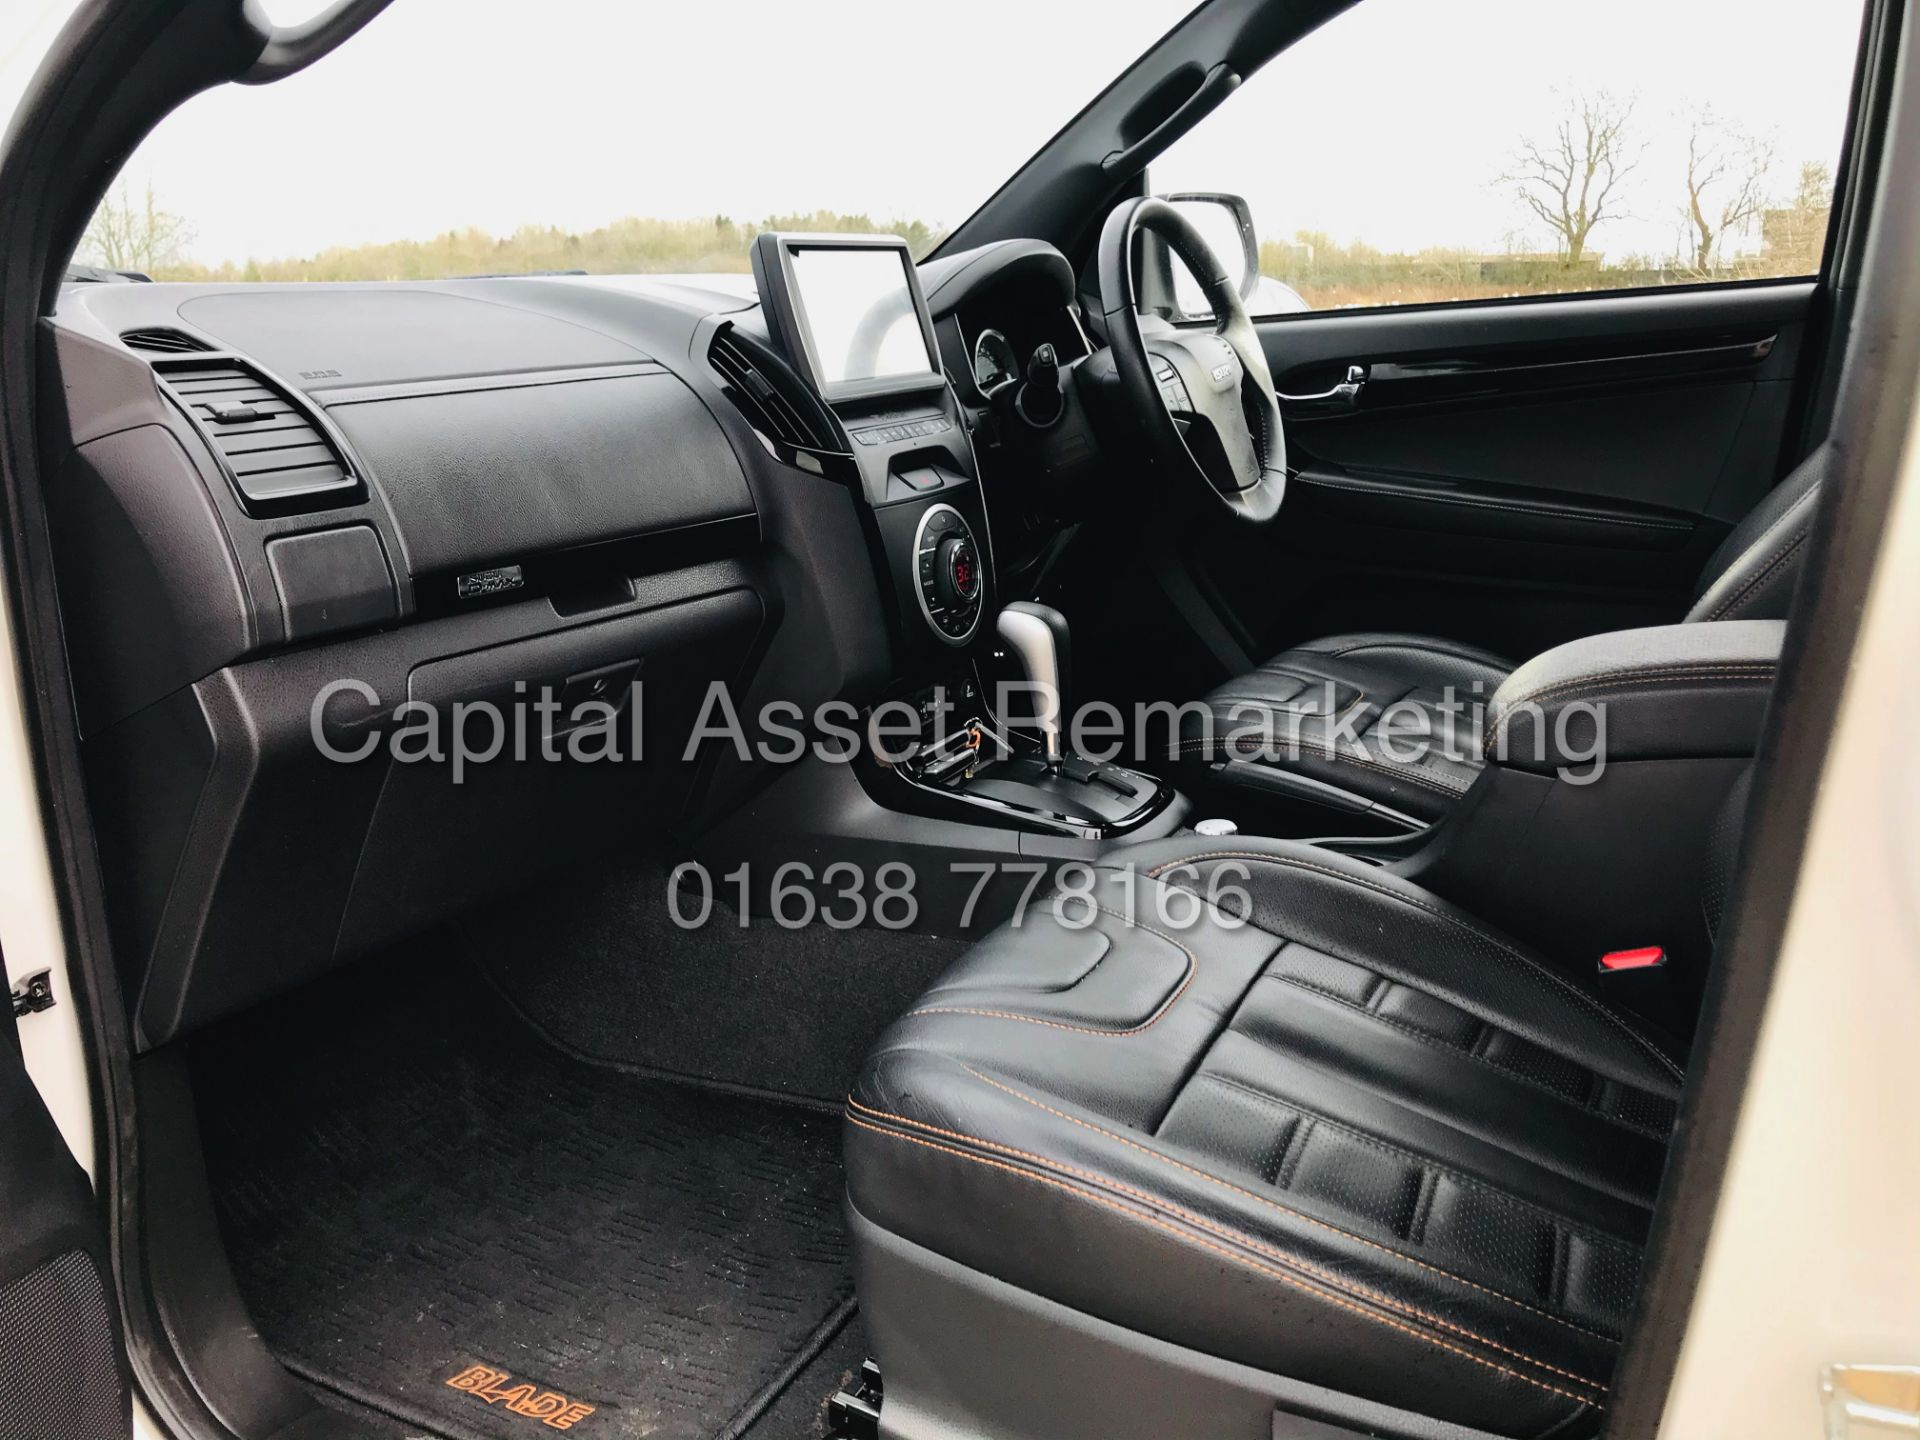 "(On Sale) ISUZU D-MAX ""BLADE"" AUTO - 1 OWNER (2019 - EURO 6) LEATHER - SAT NAV *TOP SPEC* - Image 22 of 34"